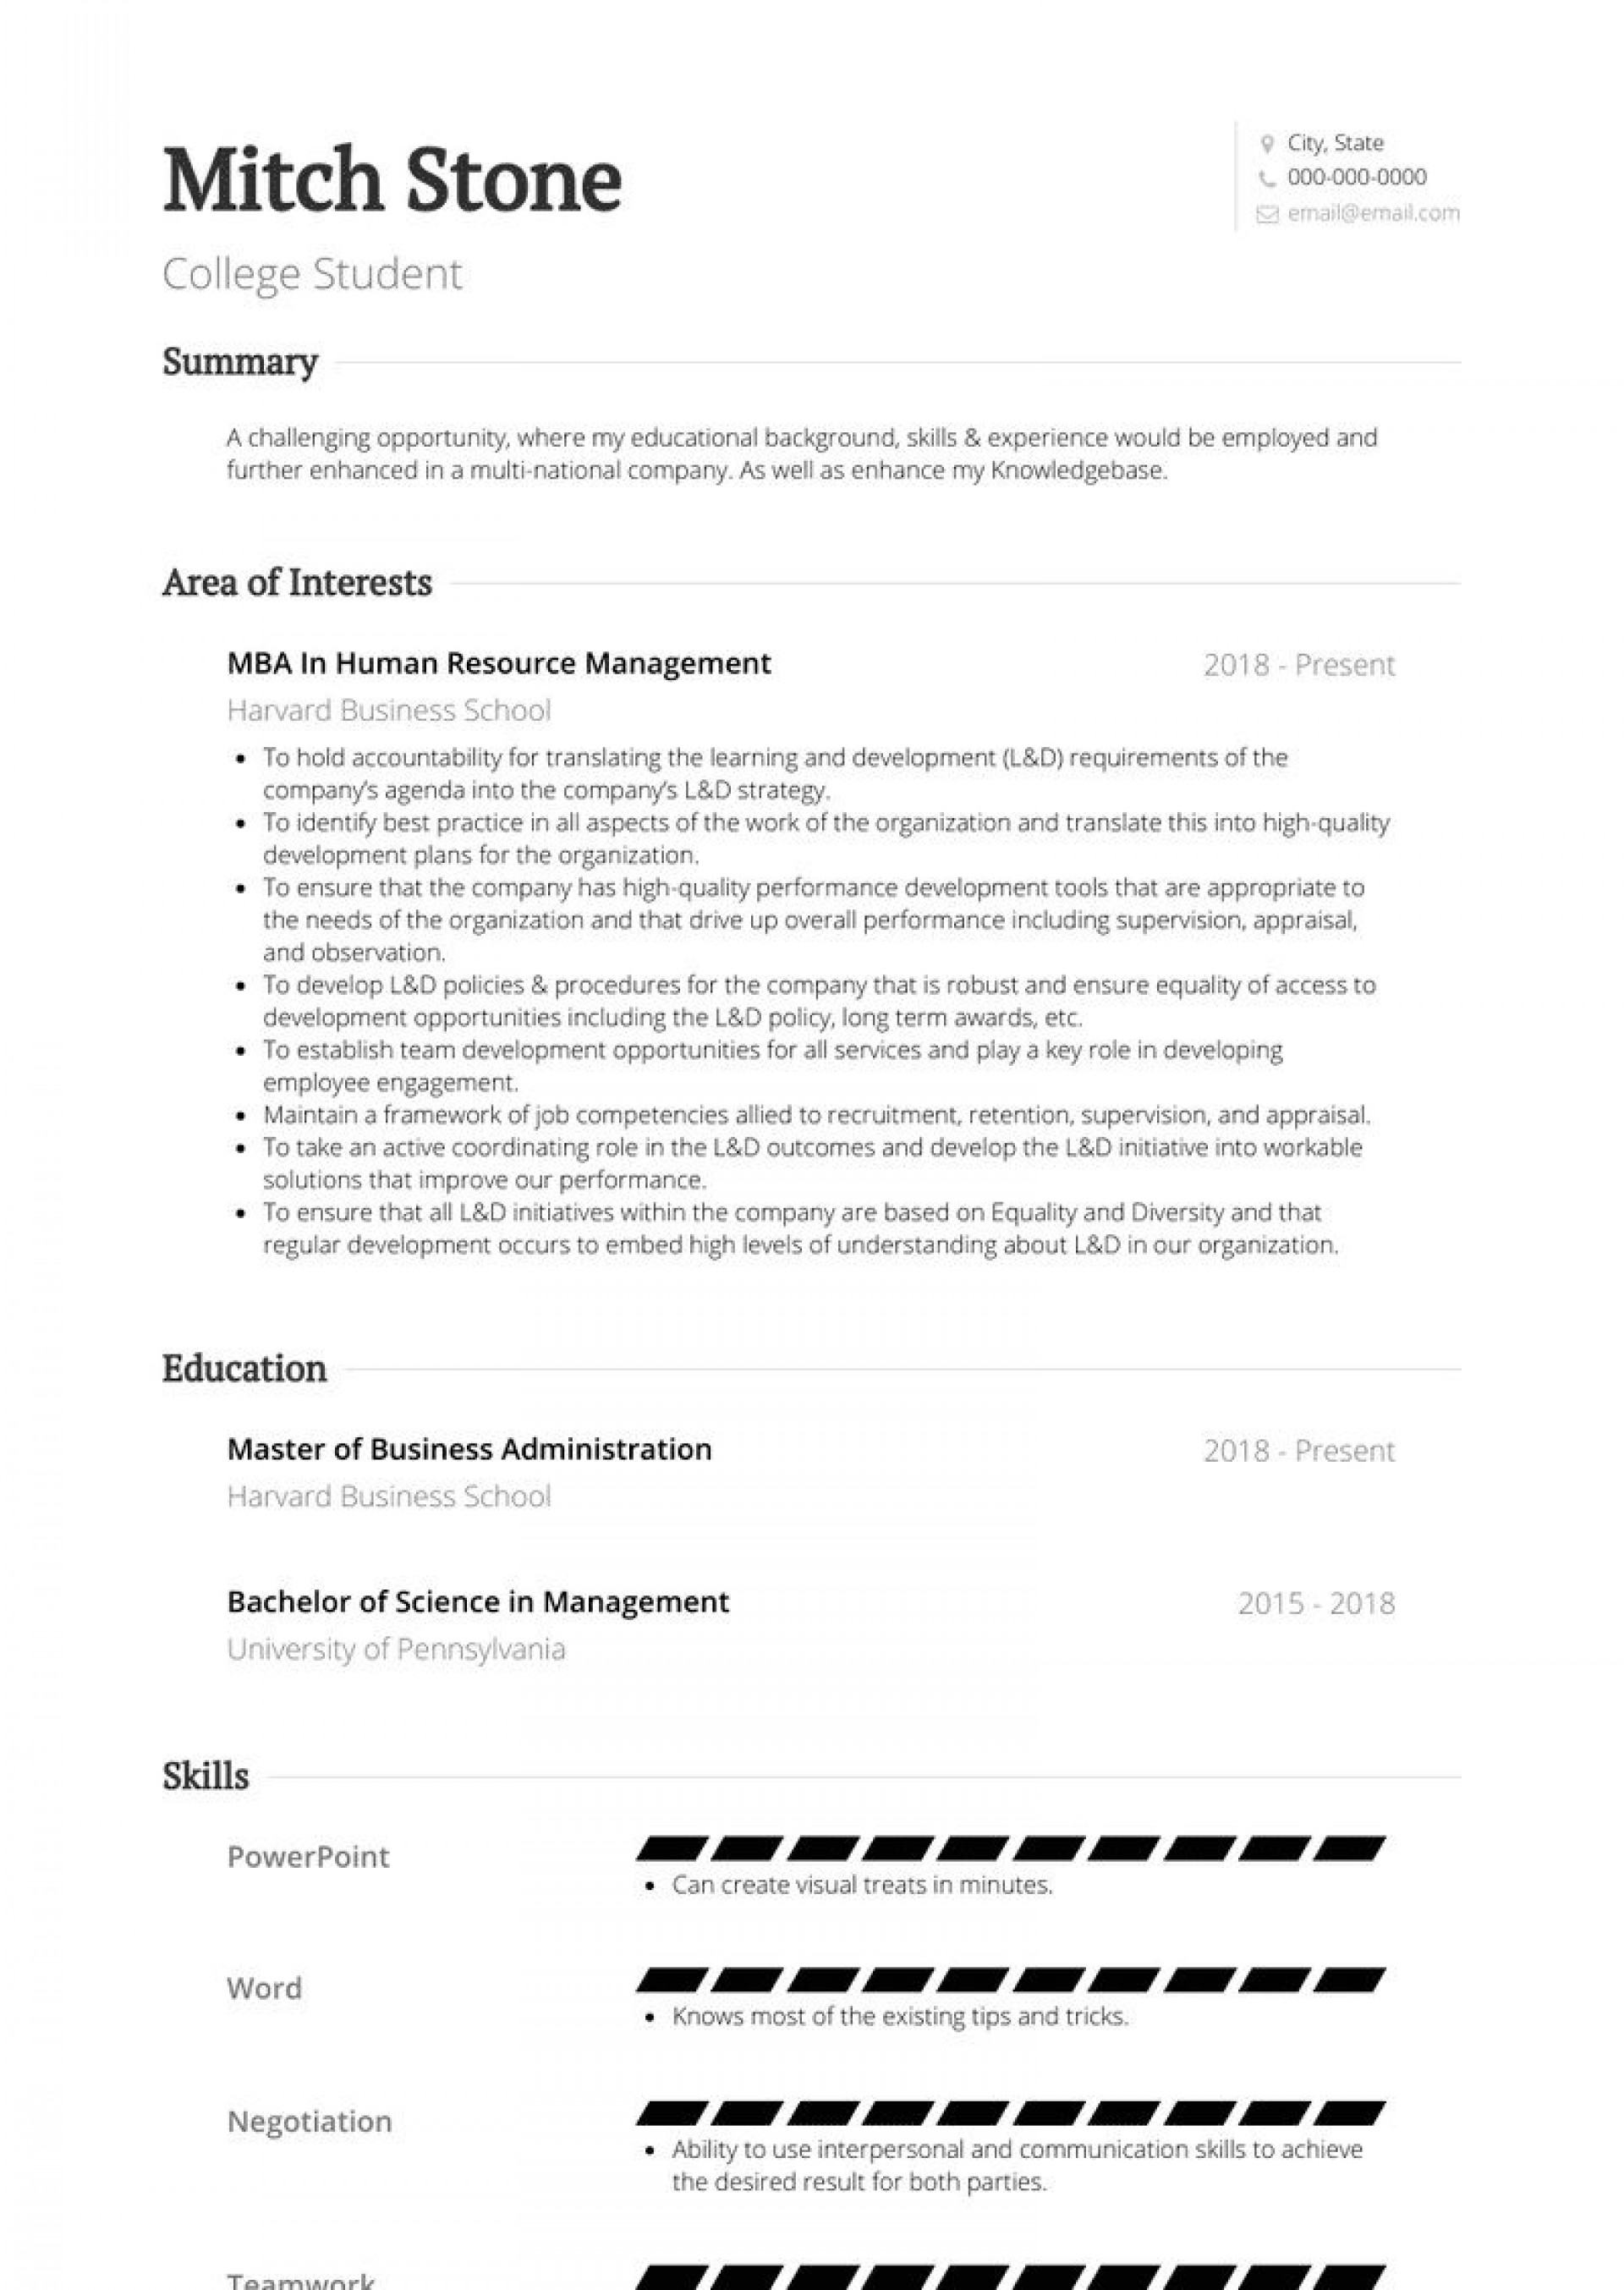 005 Frightening Resume Template For Student Photo  Students High School Internship Google Doc Openoffice Free Download1920